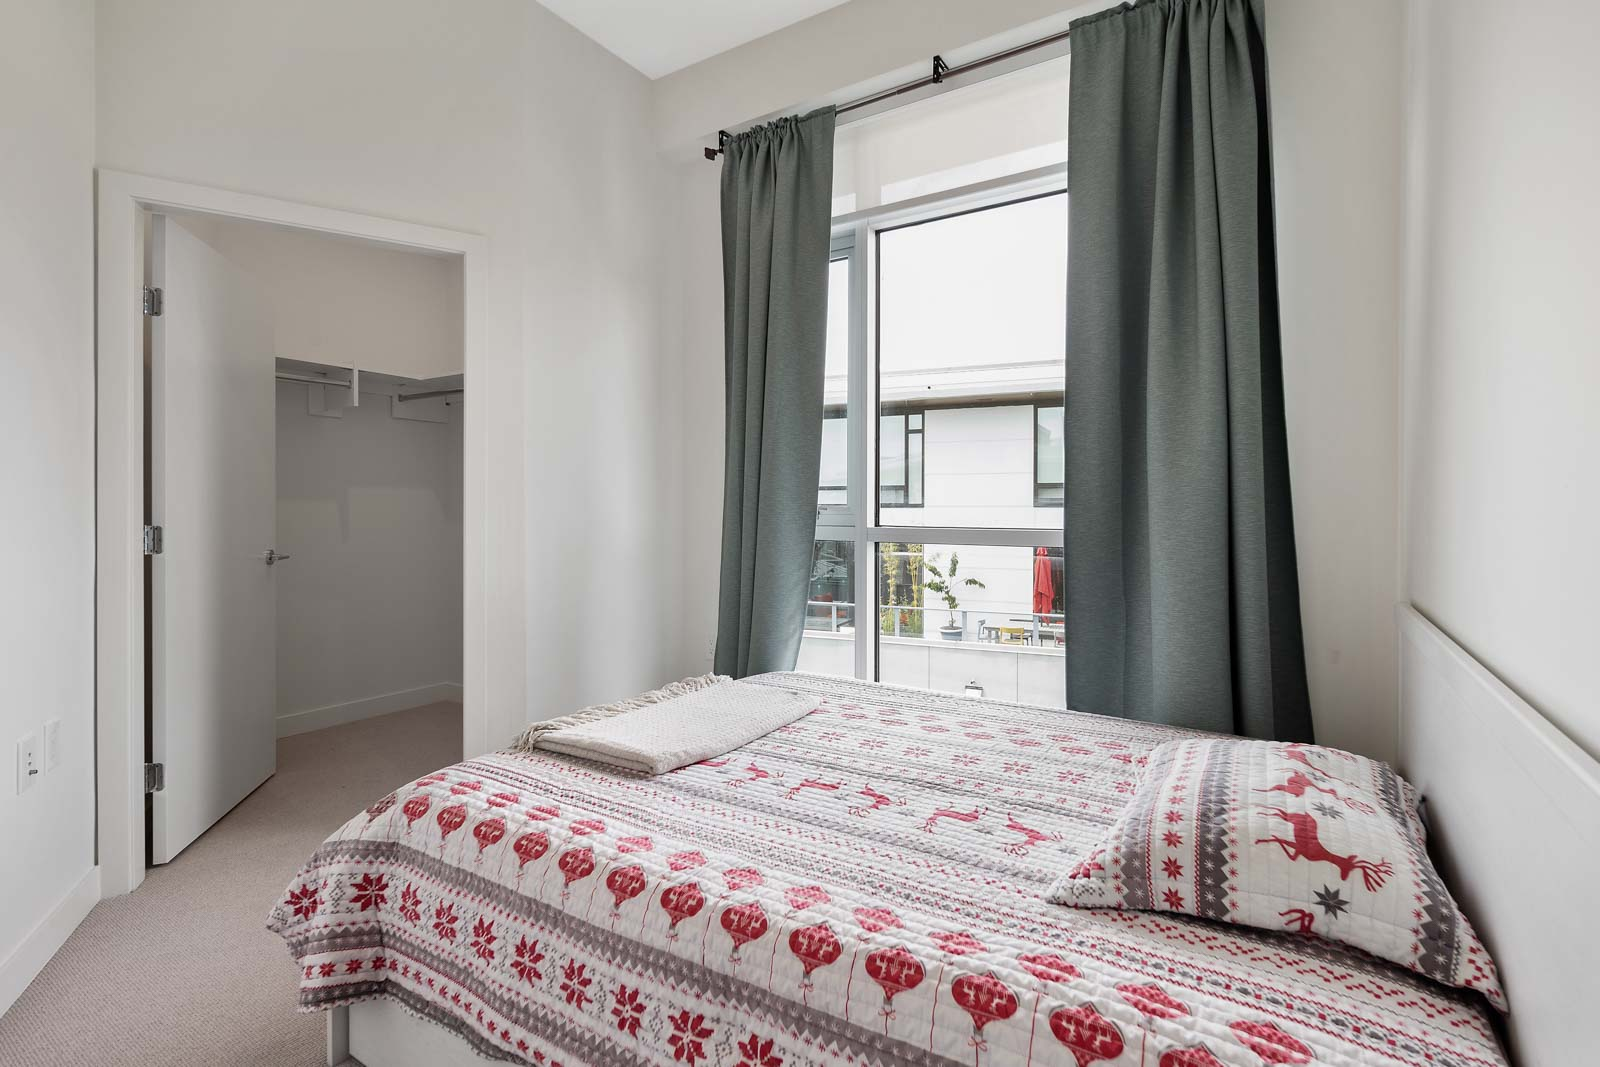 second bedroom with large windows that provides plenty of natural light flow through the unit